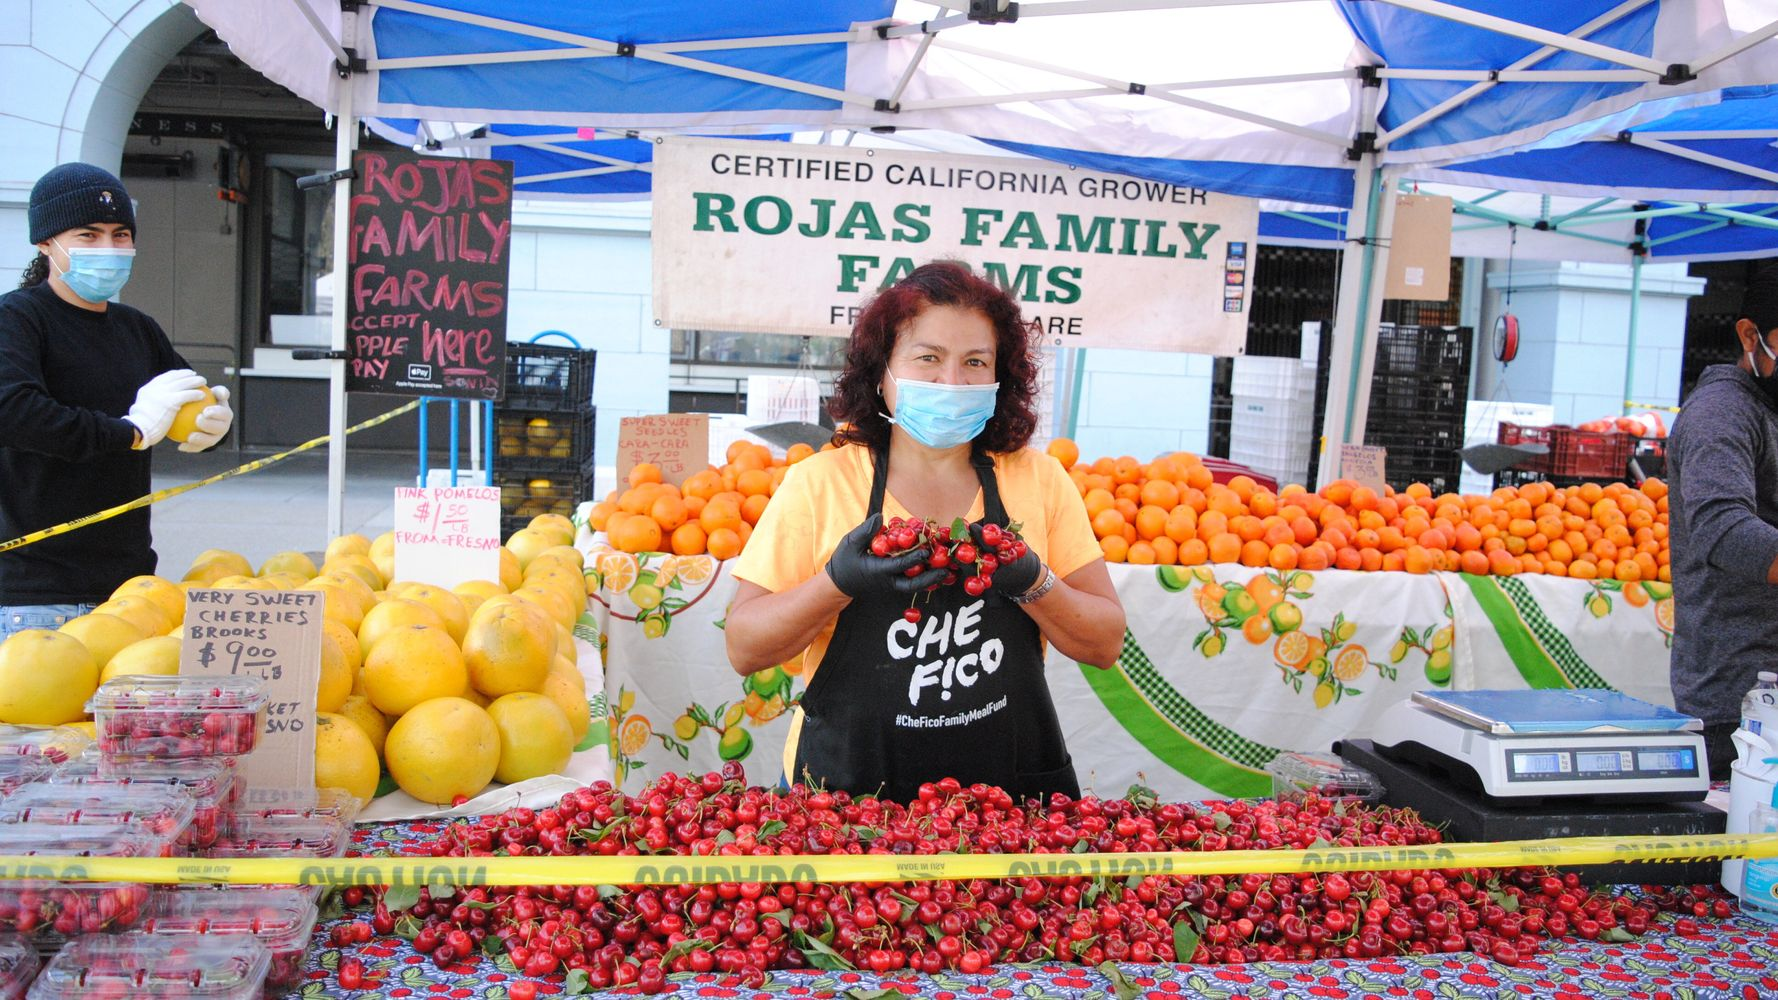 Is It Safe To Buy Food At The Farmers Market During The Pandemic? photo